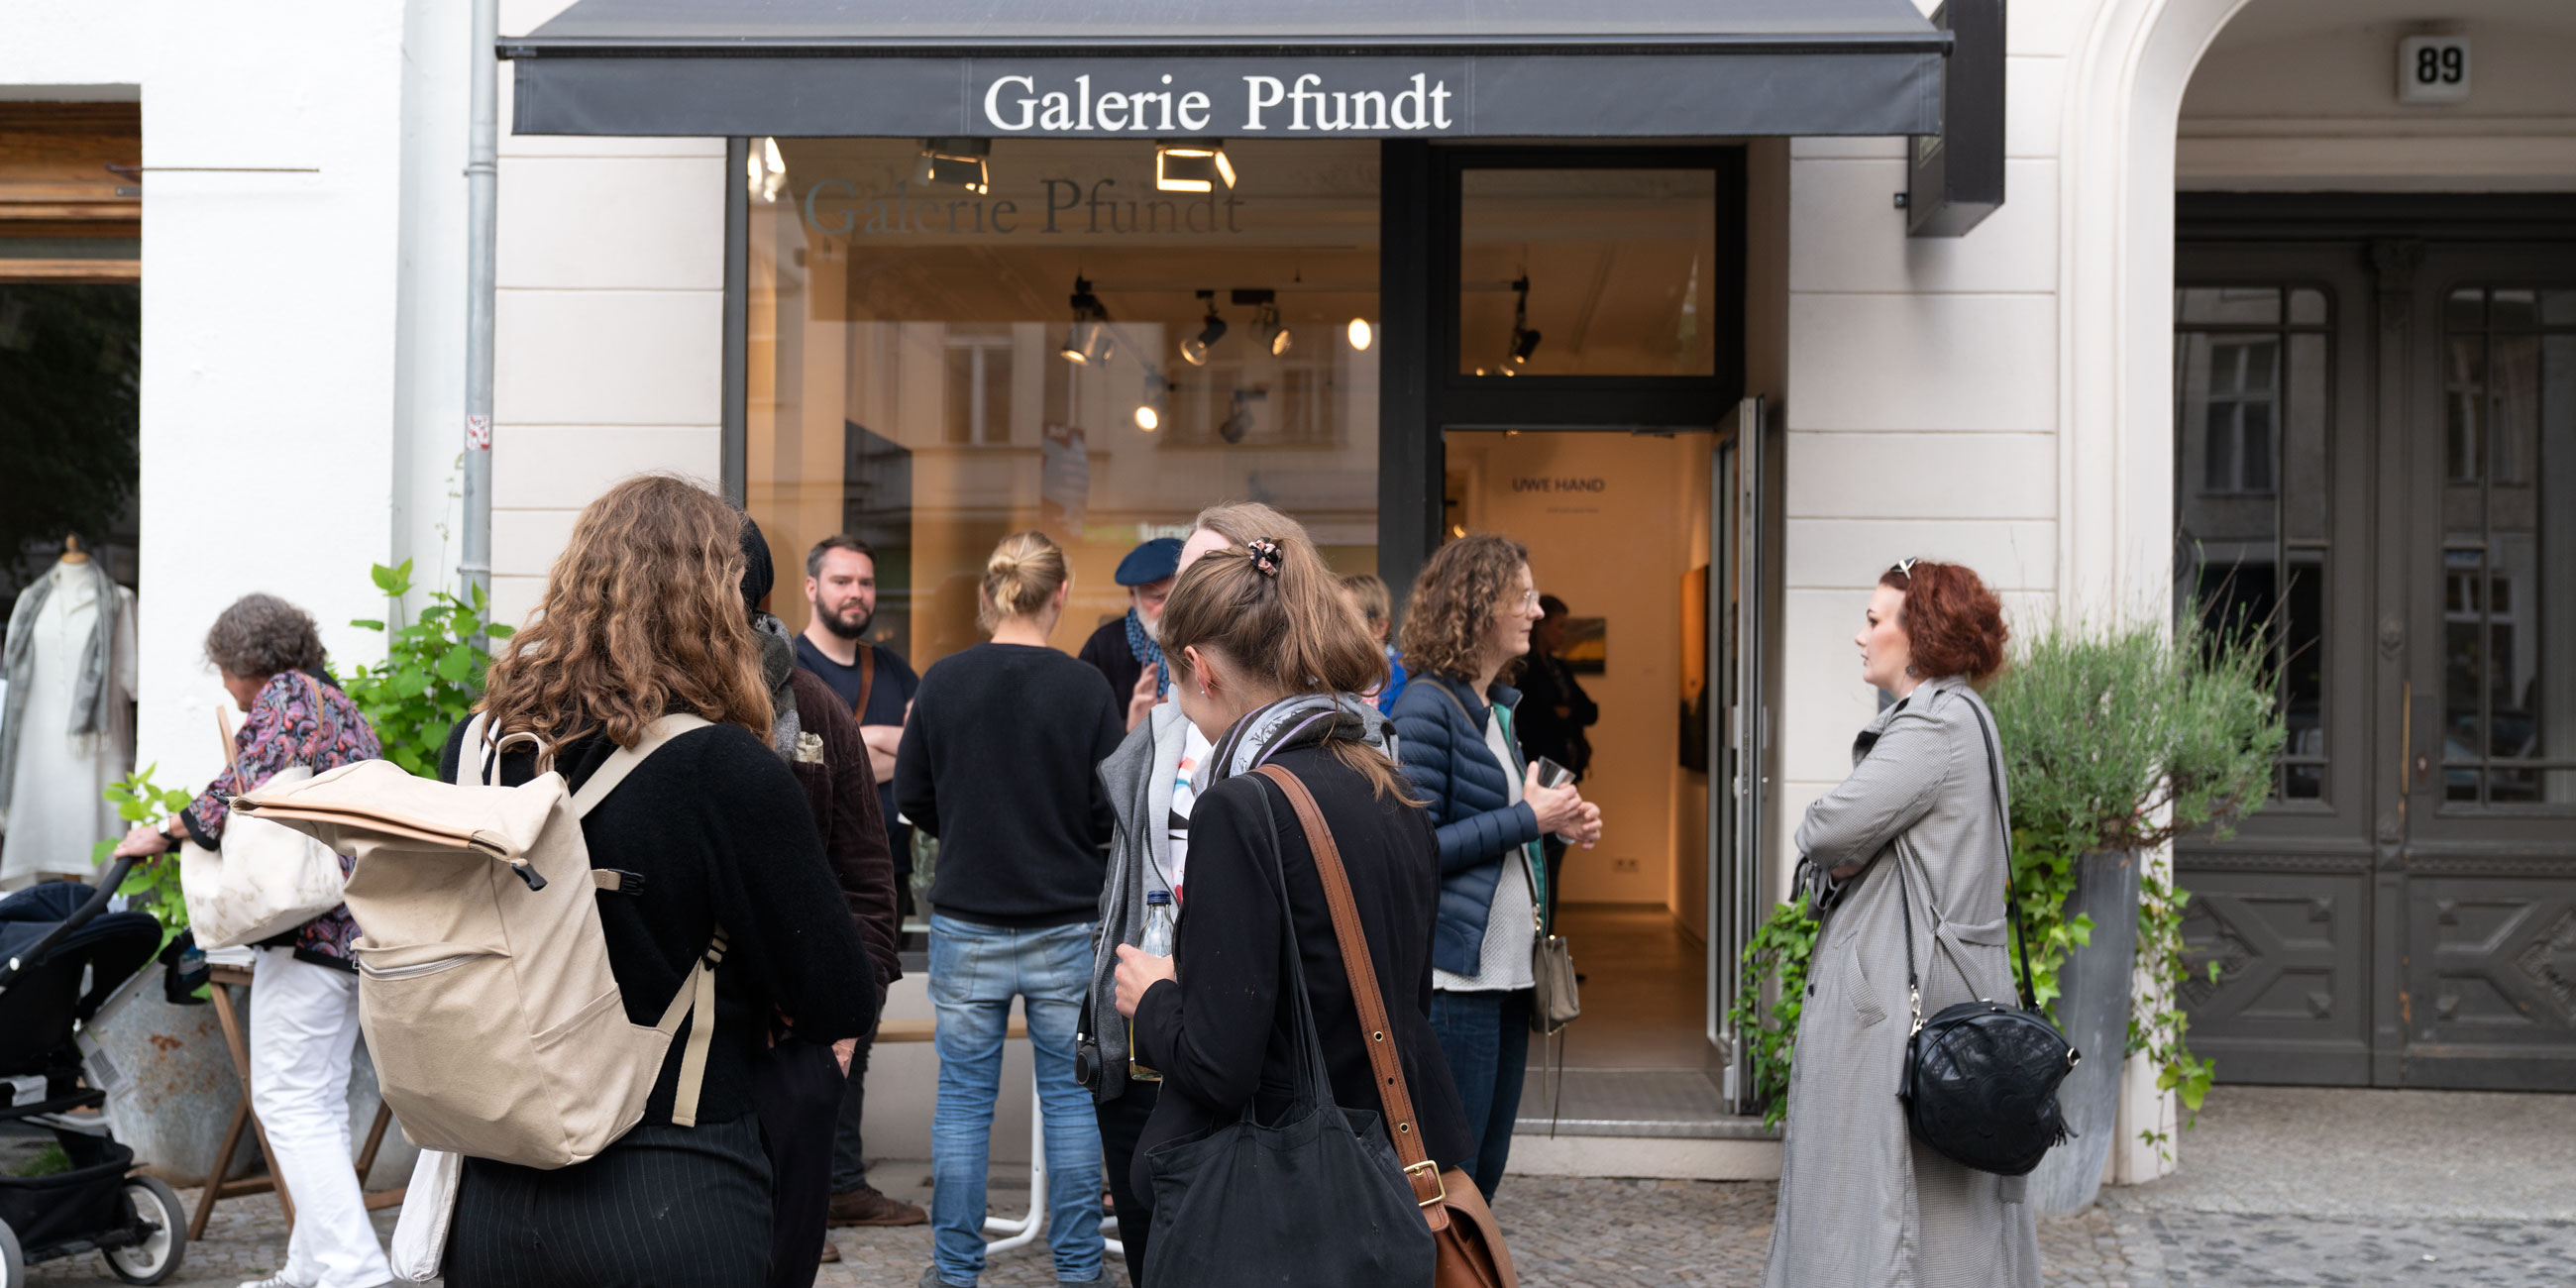 galerie_pfundt_1582